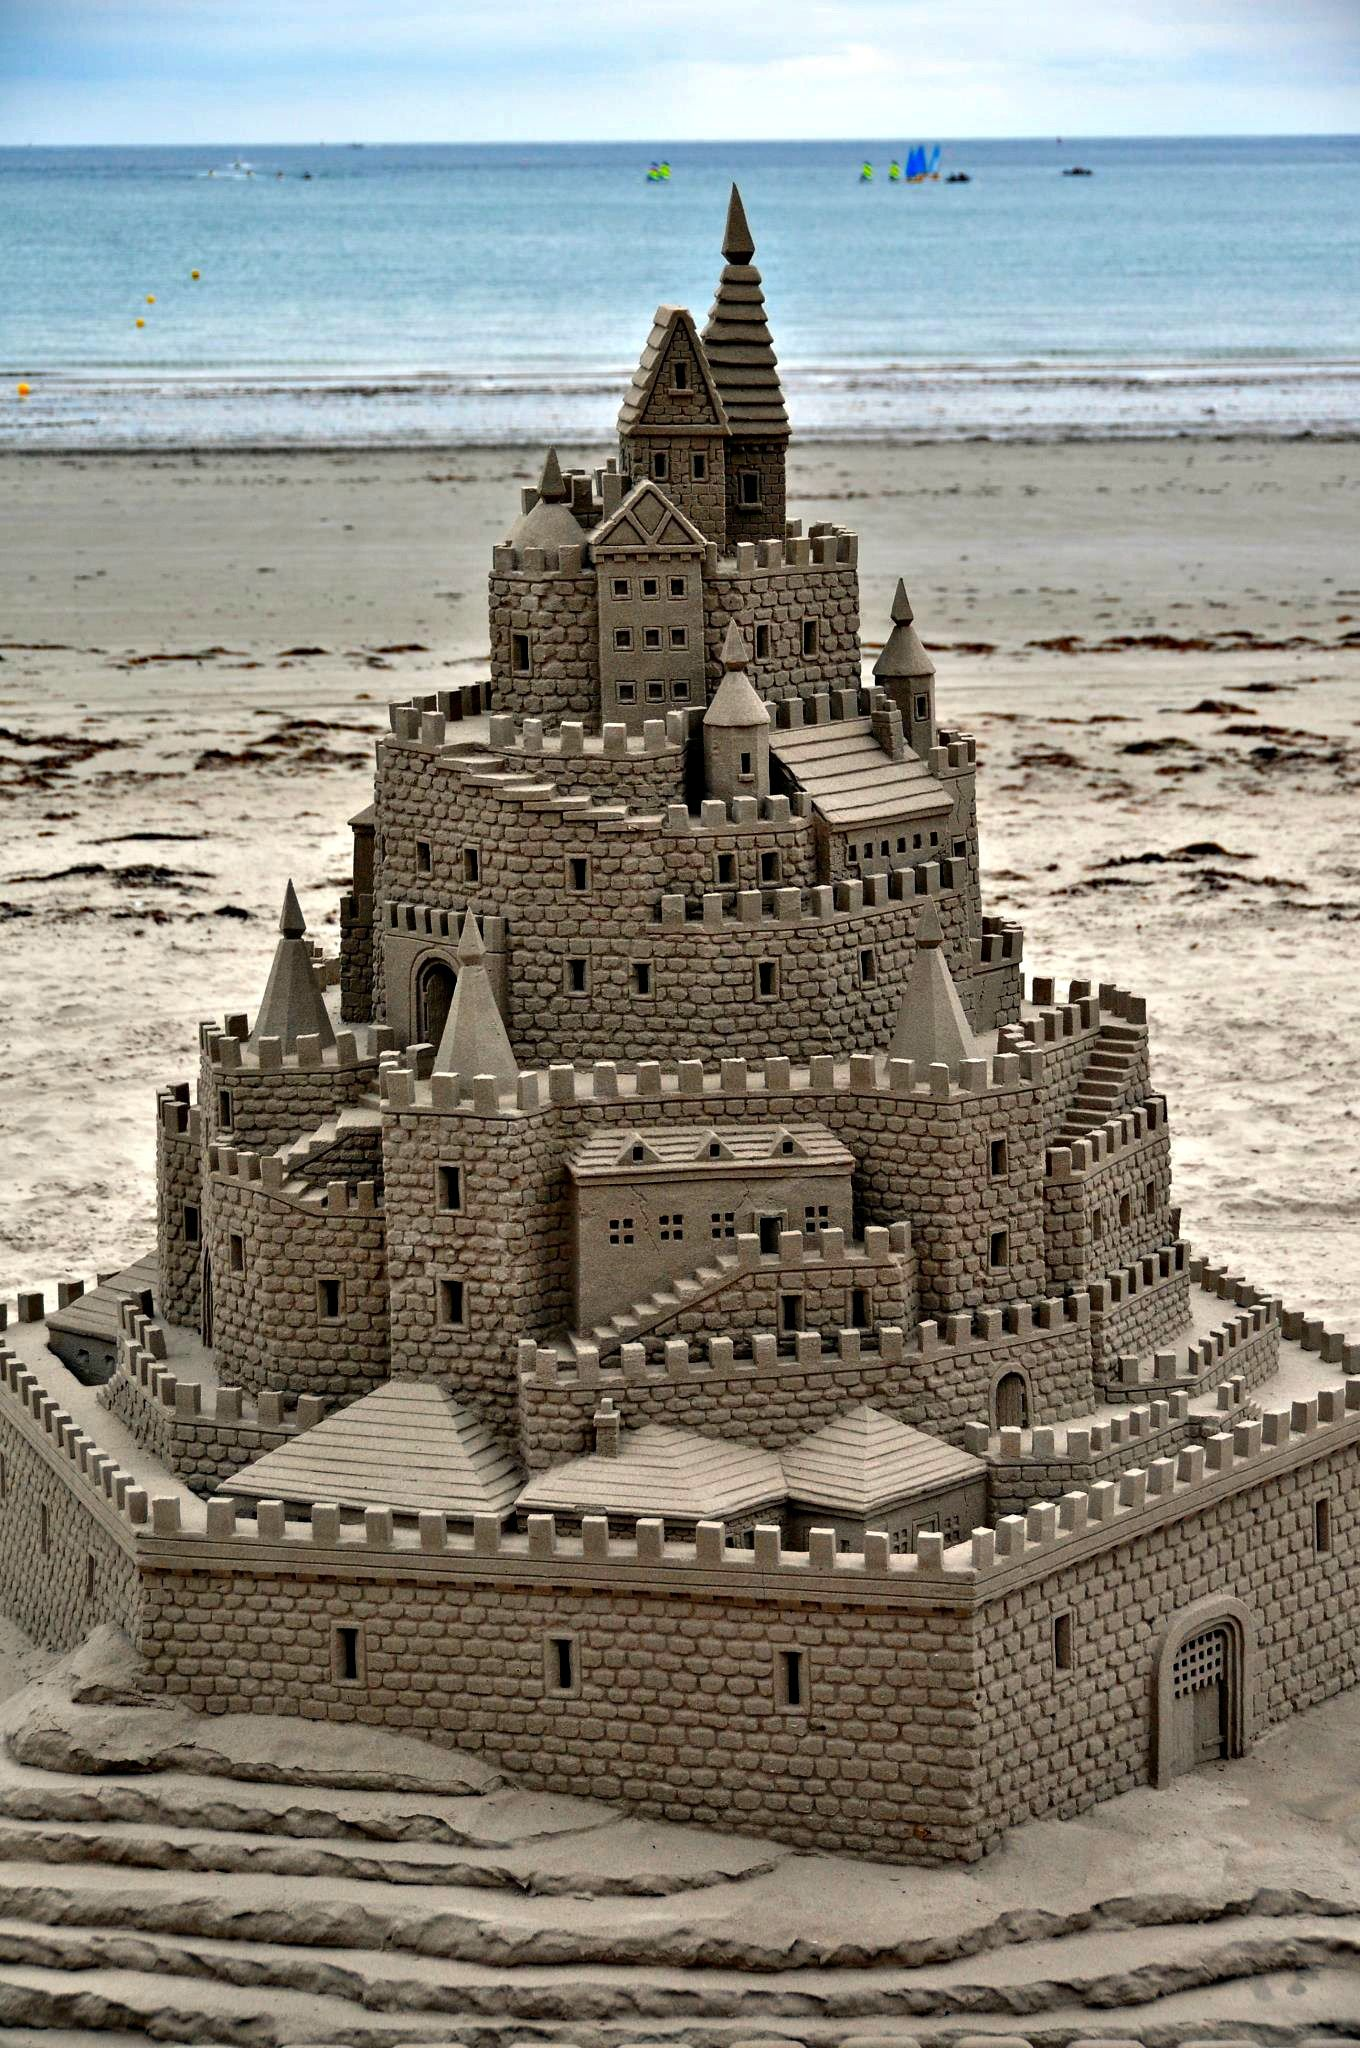 This fanciful fortress was constructed near Boardwalk Beach Resort in Panama City Beach.